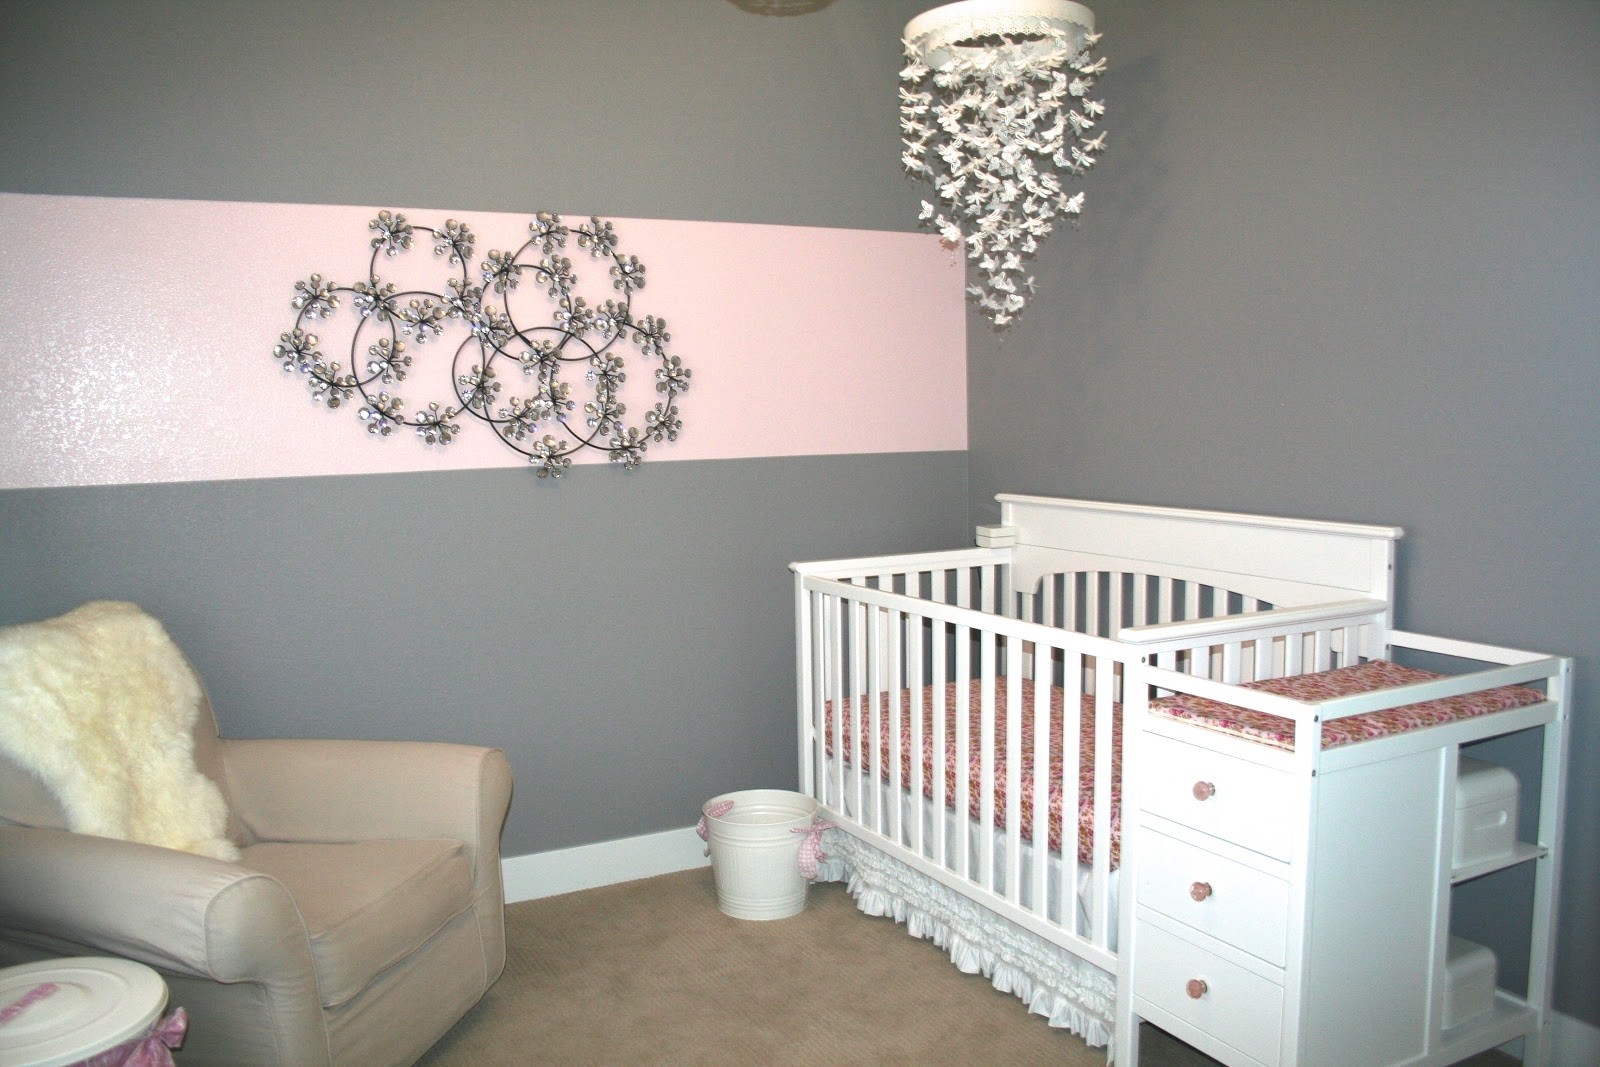 Superb Chandeliers For Ba Room 16 Chandeliers For Ba Room Inside Cheap Chandeliers For Baby Girl Room (View 3 of 25)